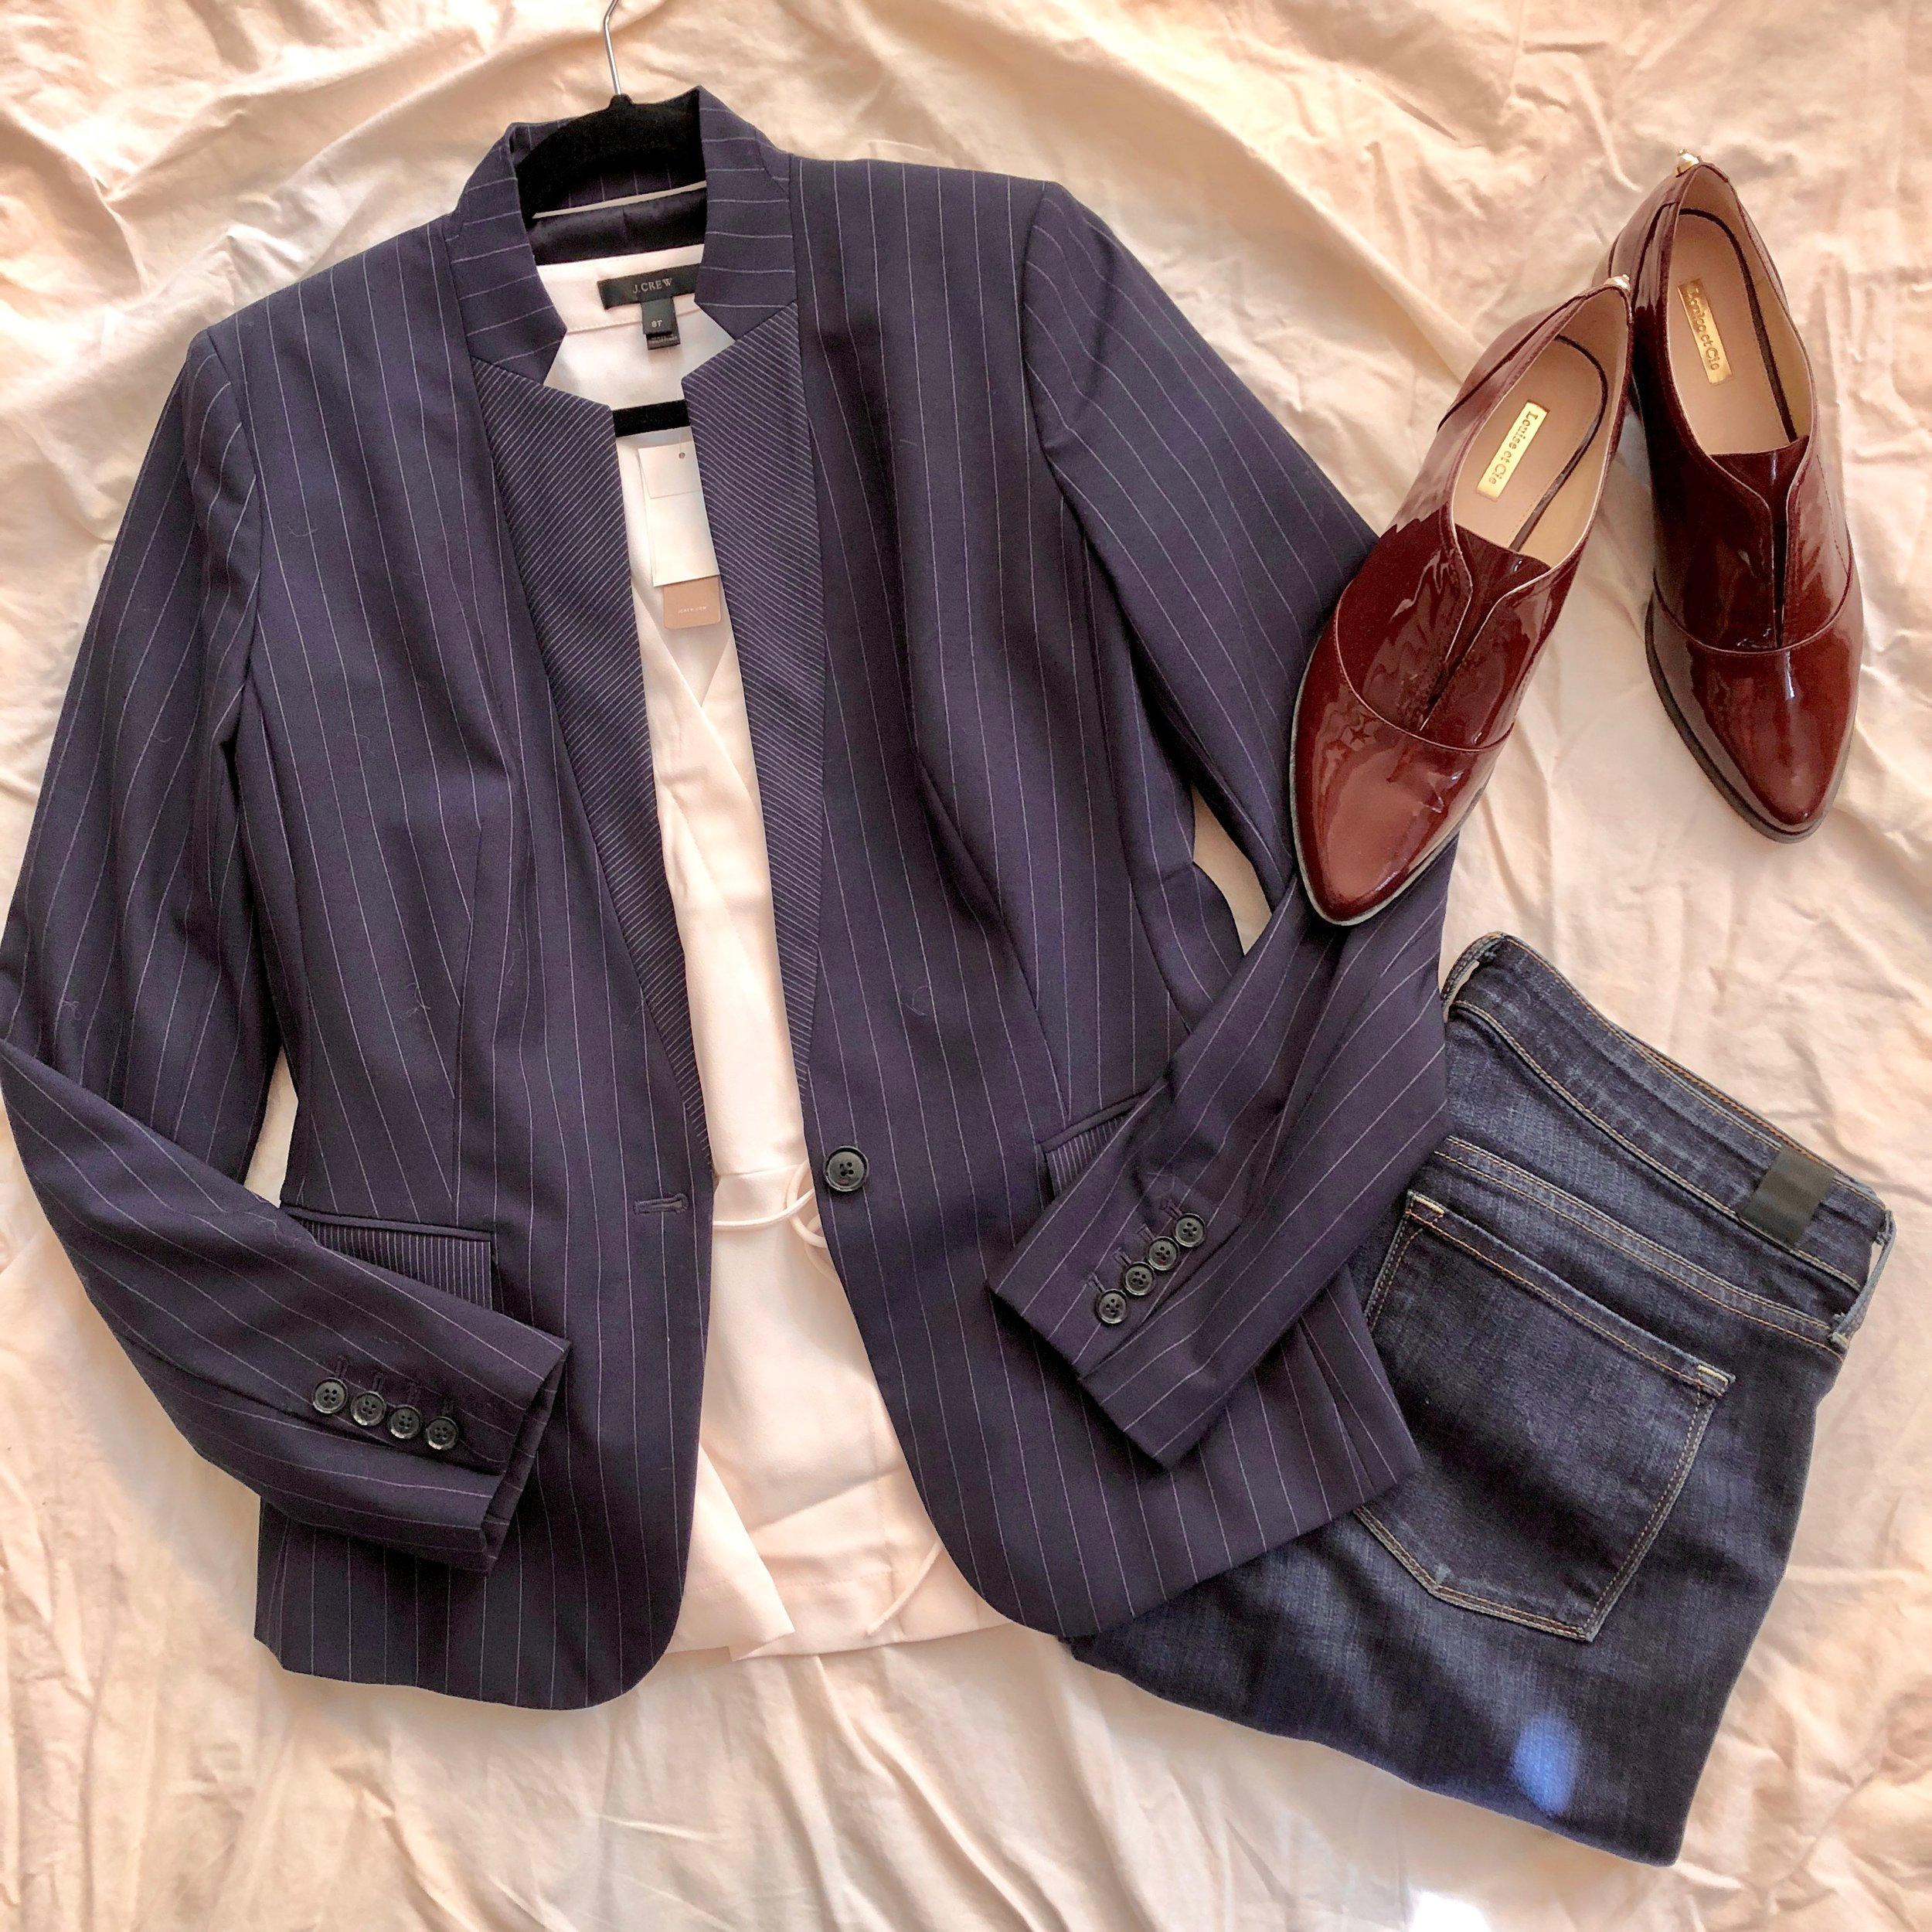 A tailored blazer is key in a business professional wardrobe, but it's also ideal for casual date night with washed out blue jeans and cute flats.